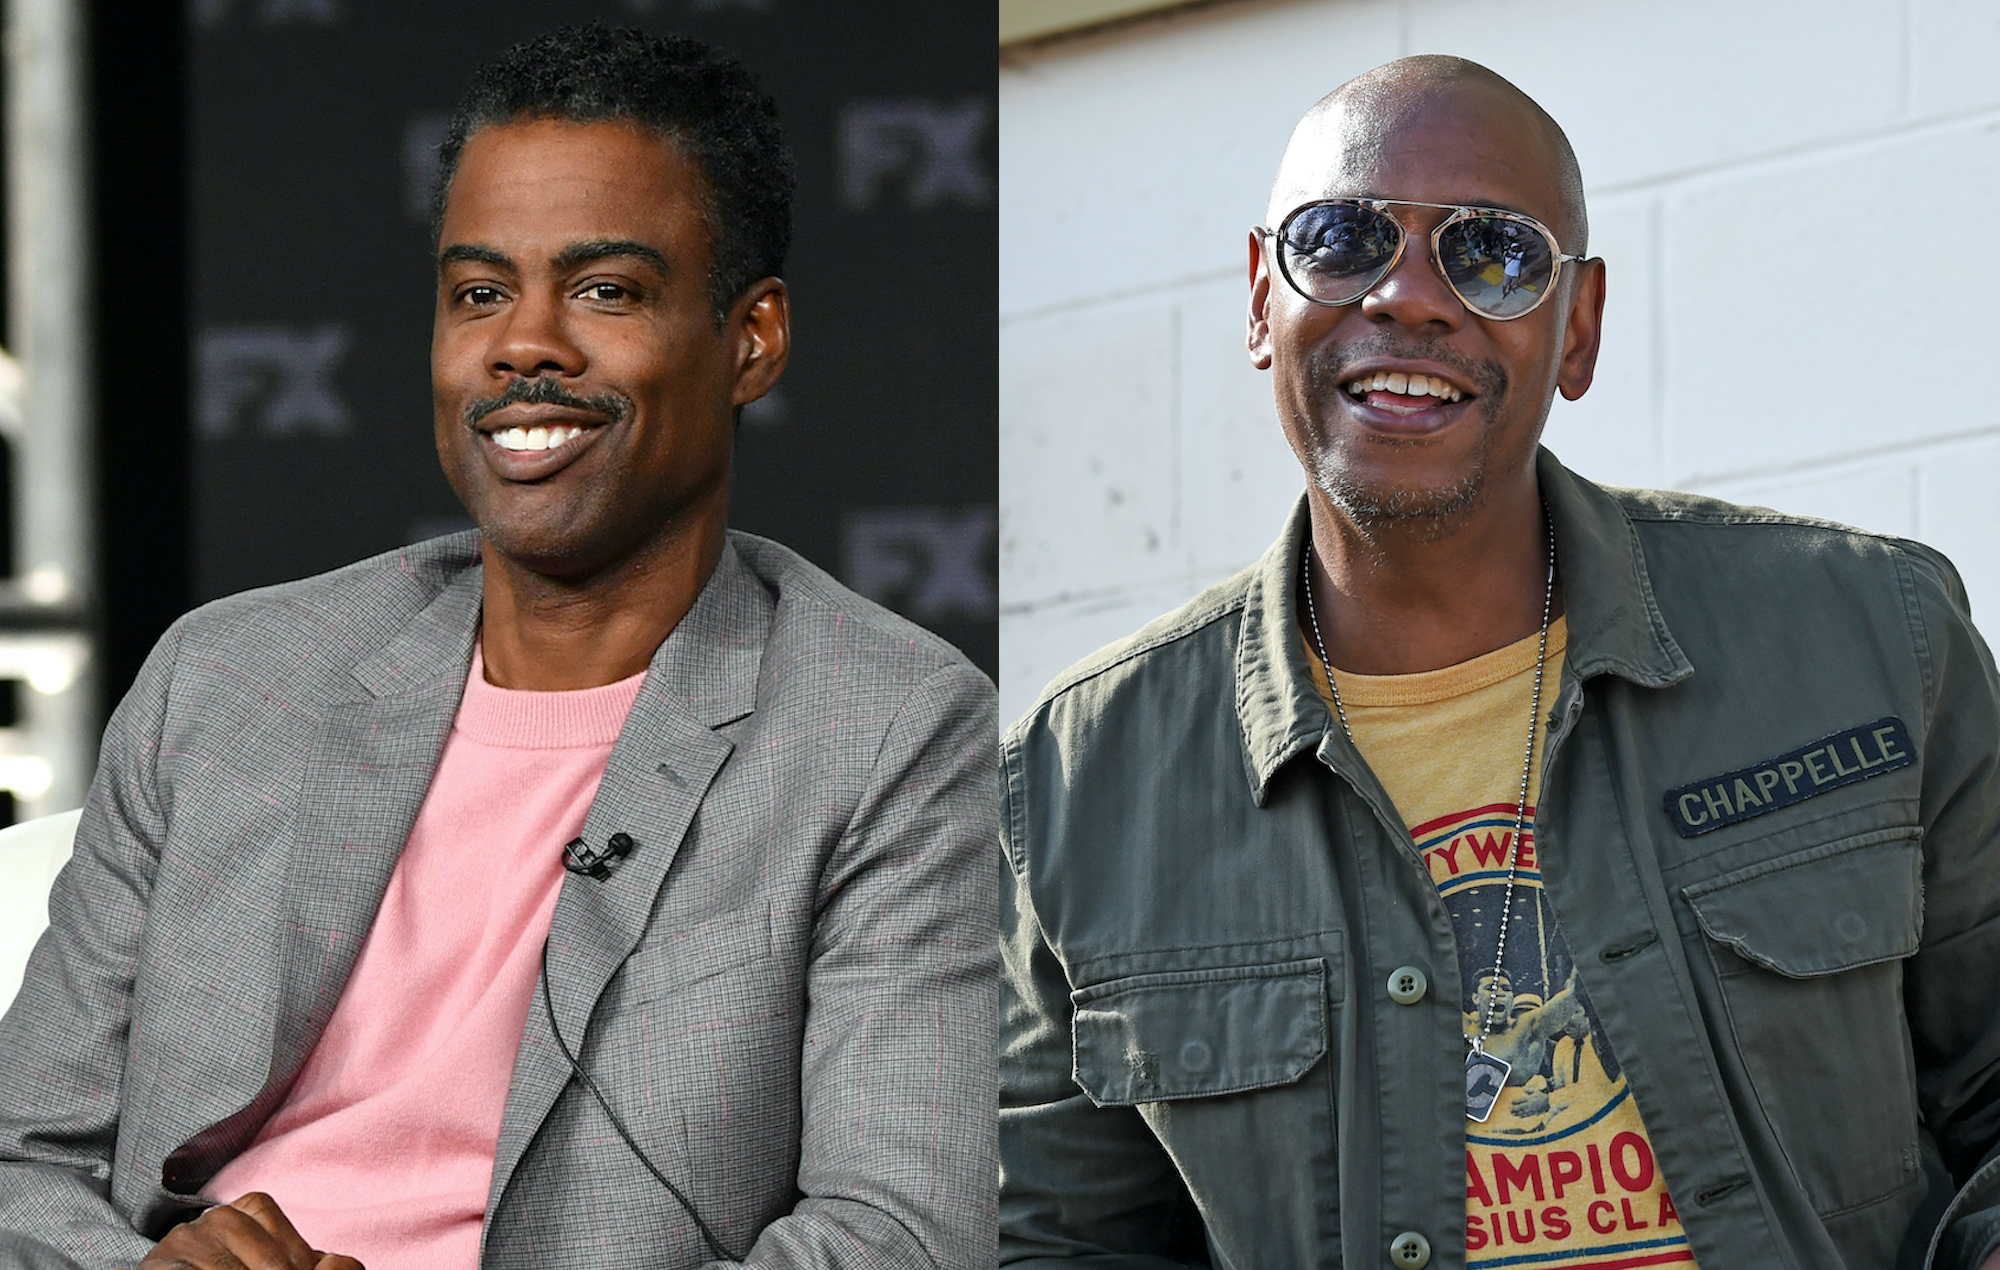 chris rock and dave chappelle to star in def comedy jam coronavirus special chris rock and dave chappelle to star